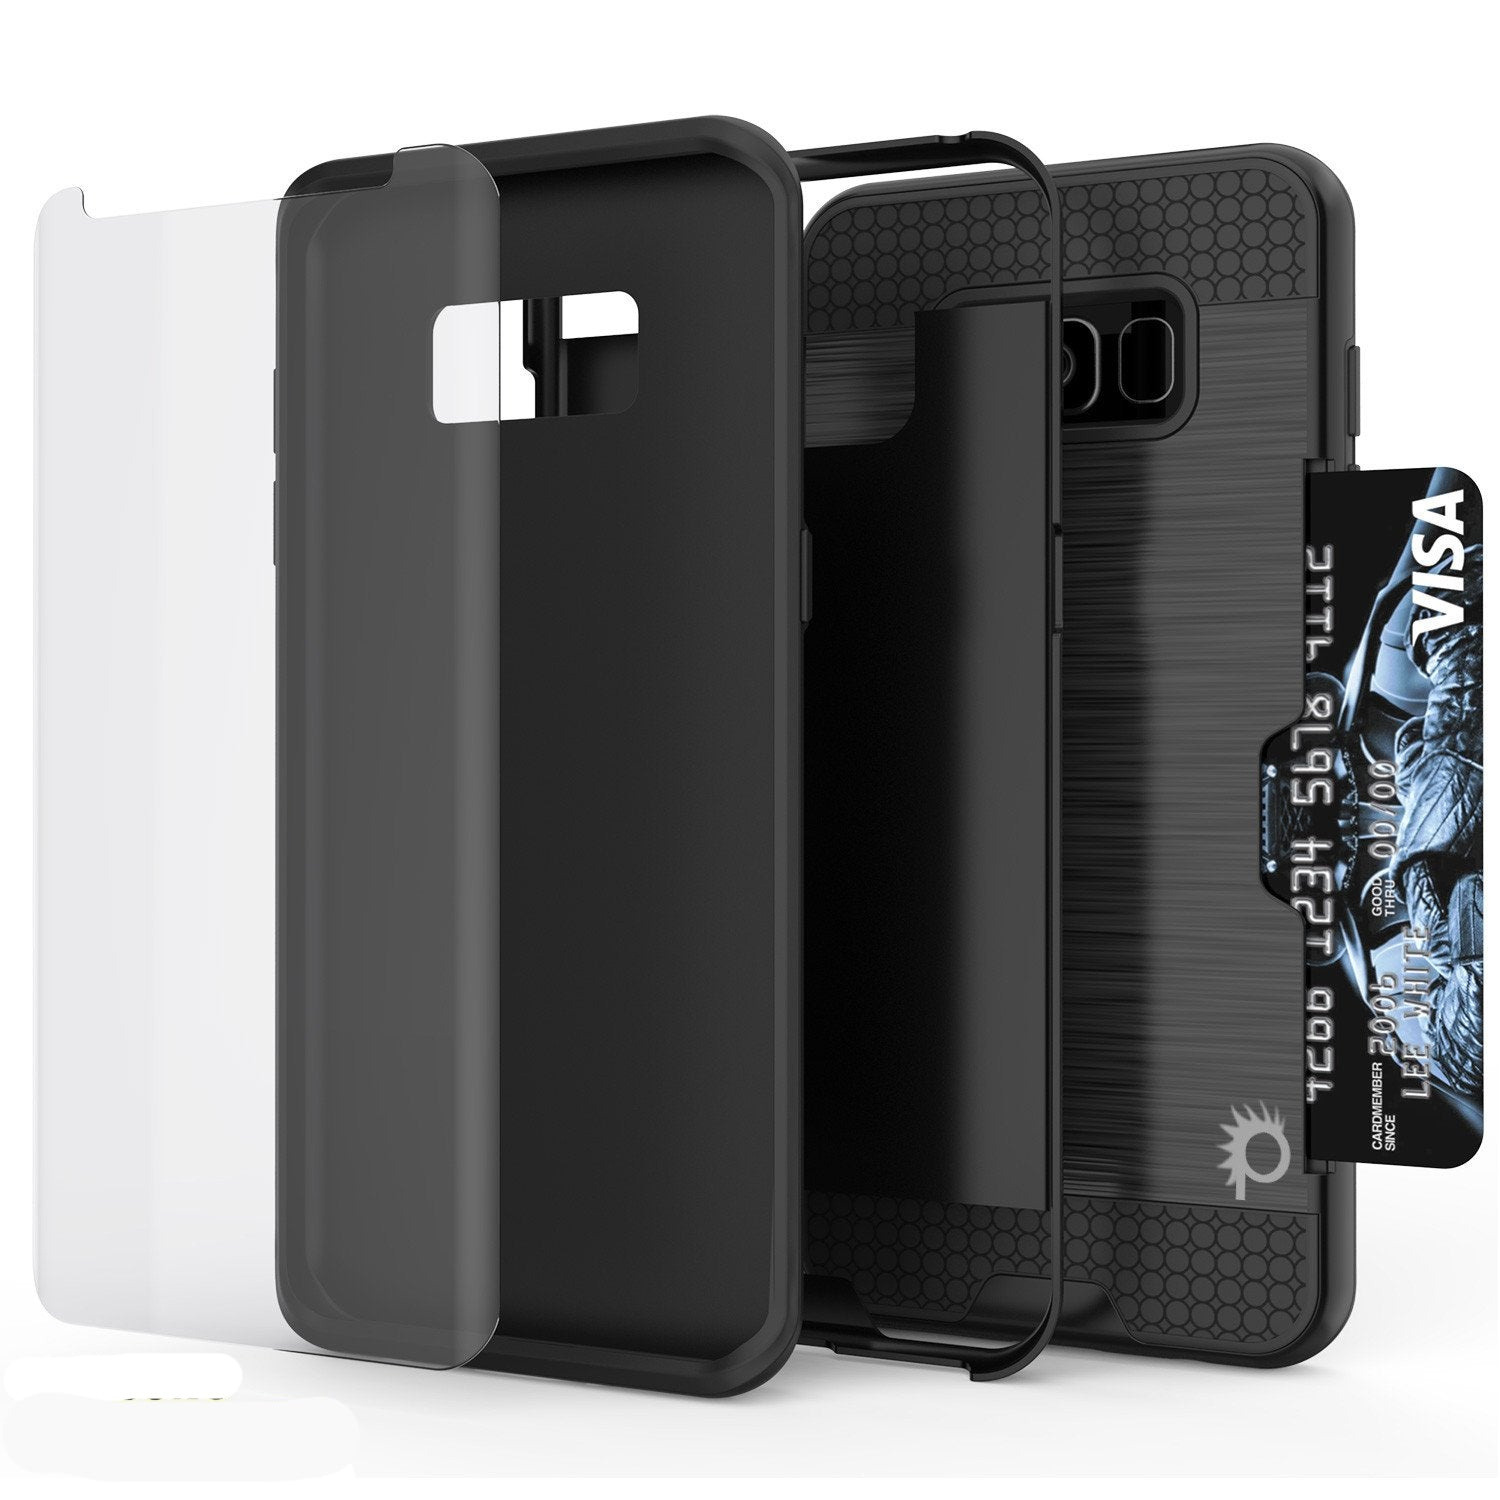 Galaxy S8 Case, PUNKcase [SLOT Series] [Slim Fit] Dual-Layer Armor Cover w/Integrated Anti-Shock System, Credit Card Slot [Black]